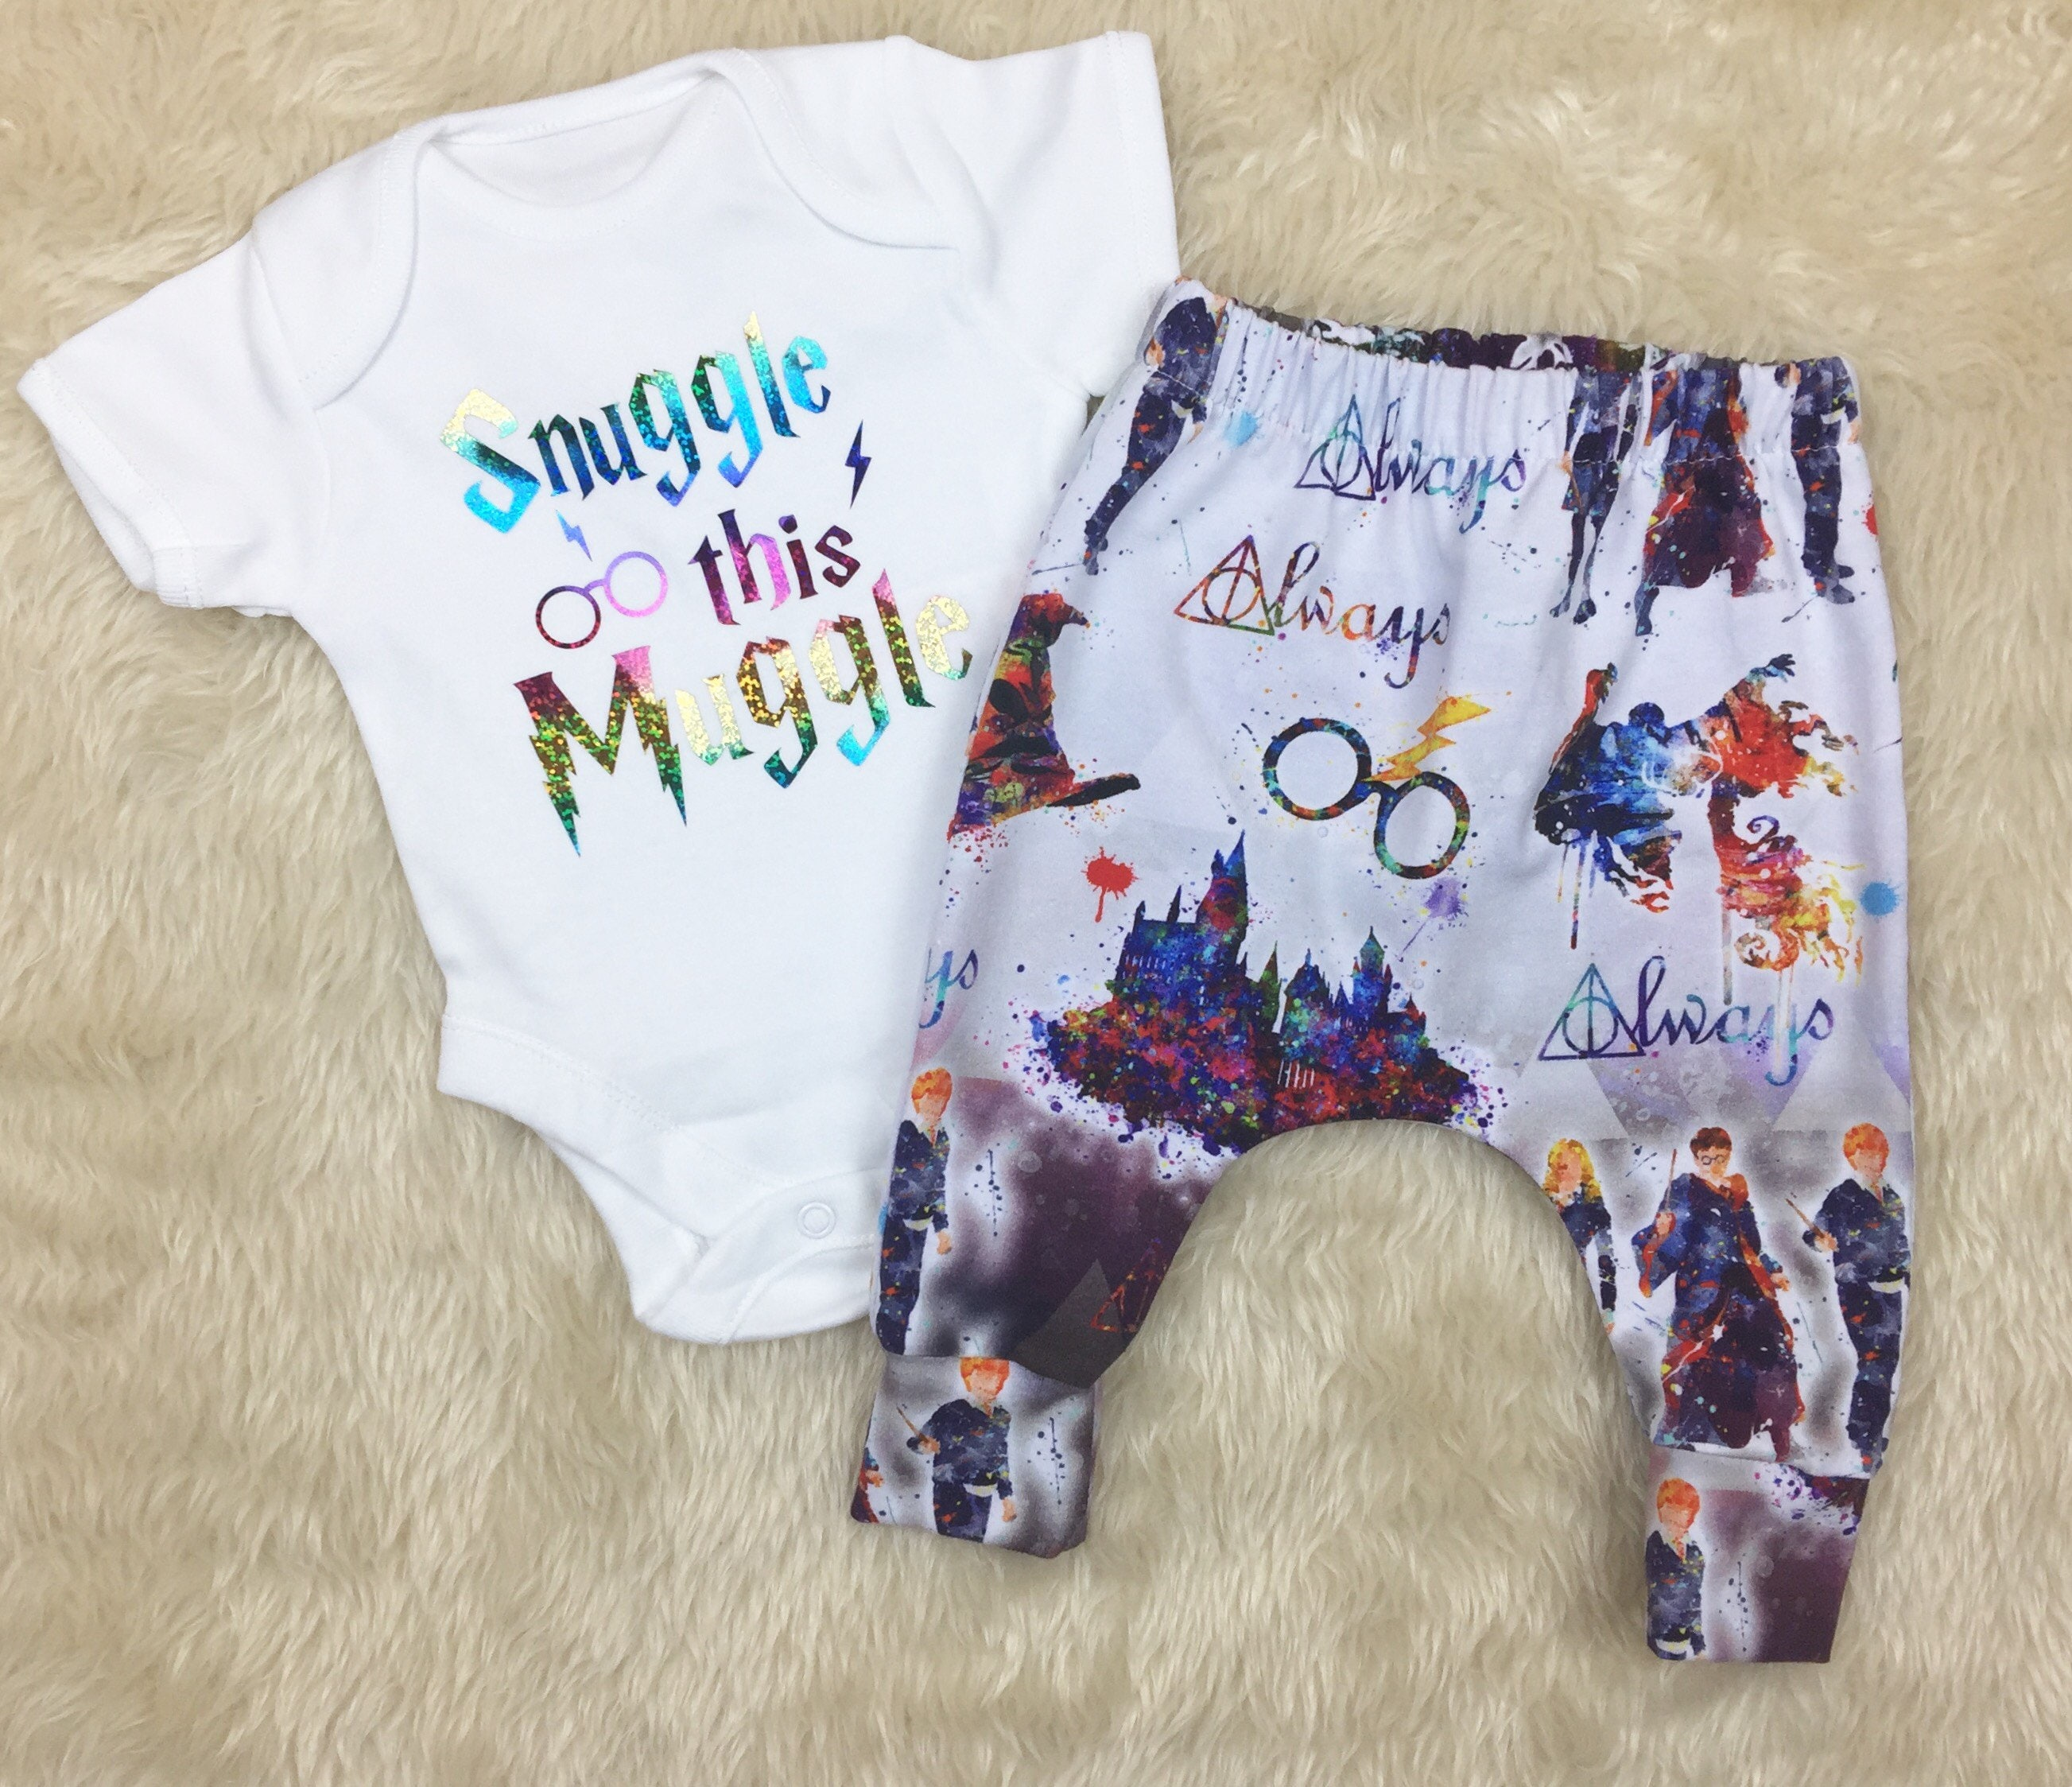 Harry Potter Baby Outfit  Harry Potter Clothes  Snuggle That Muggle  Harry Potter Clothes  Harry Potter Onesie  Harry Potter Trousers